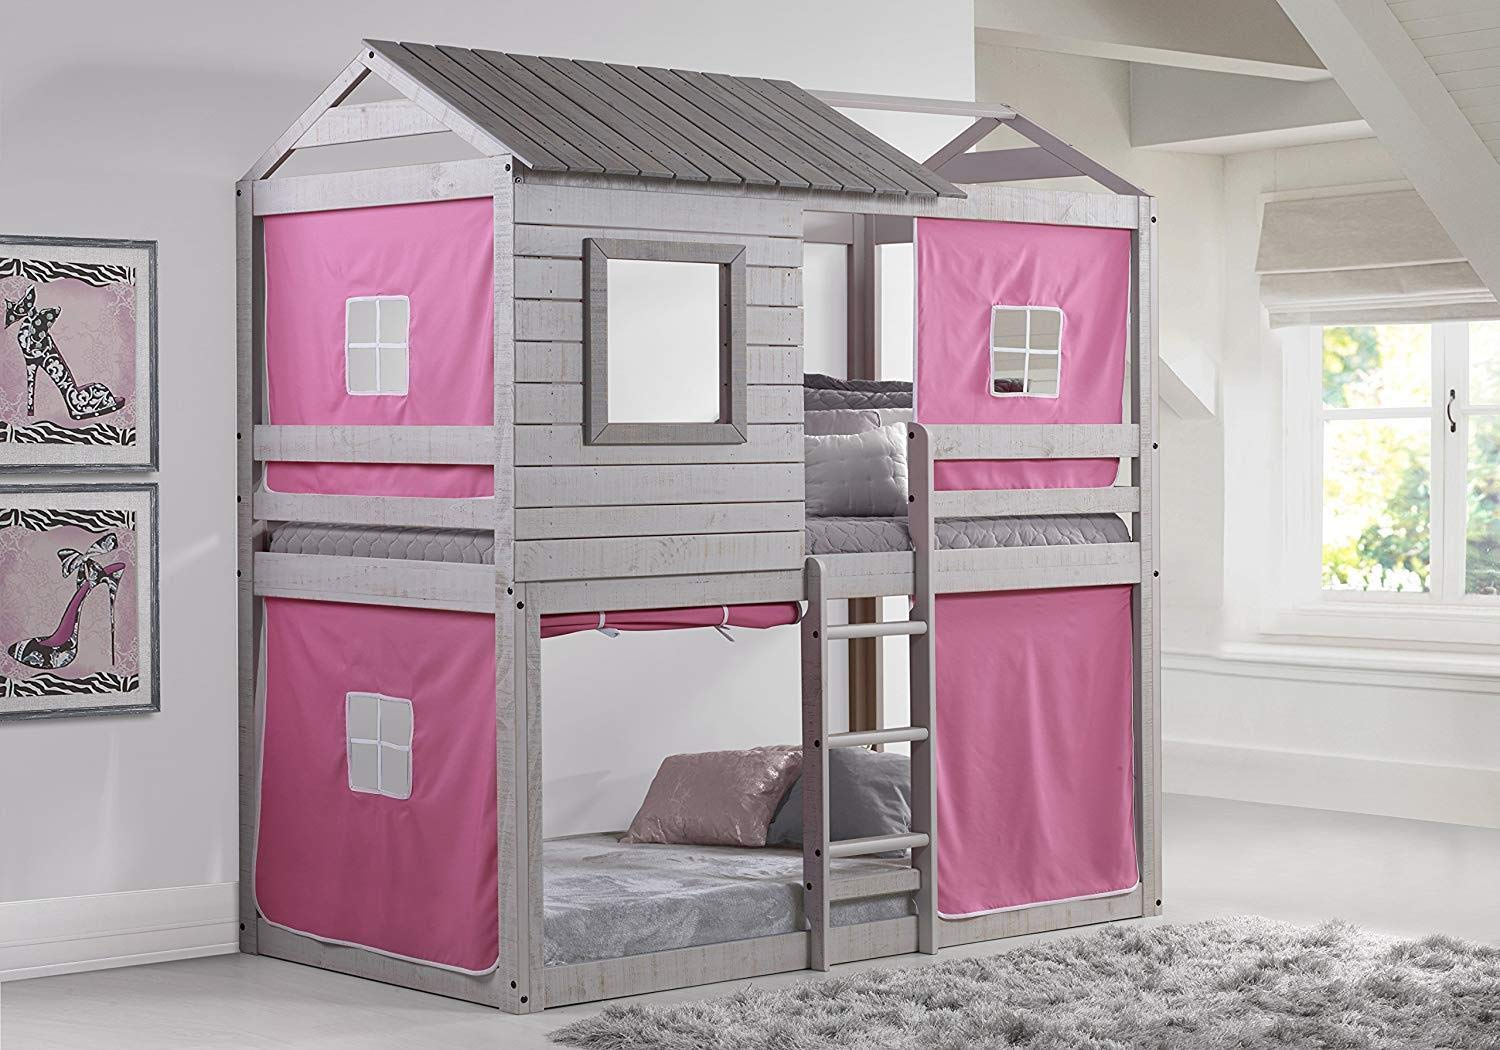 Donco Kids Deer Blind Bunk Loft Bed with Pink Tent, Twin/Twin, Light Grey by DONCO KIDS